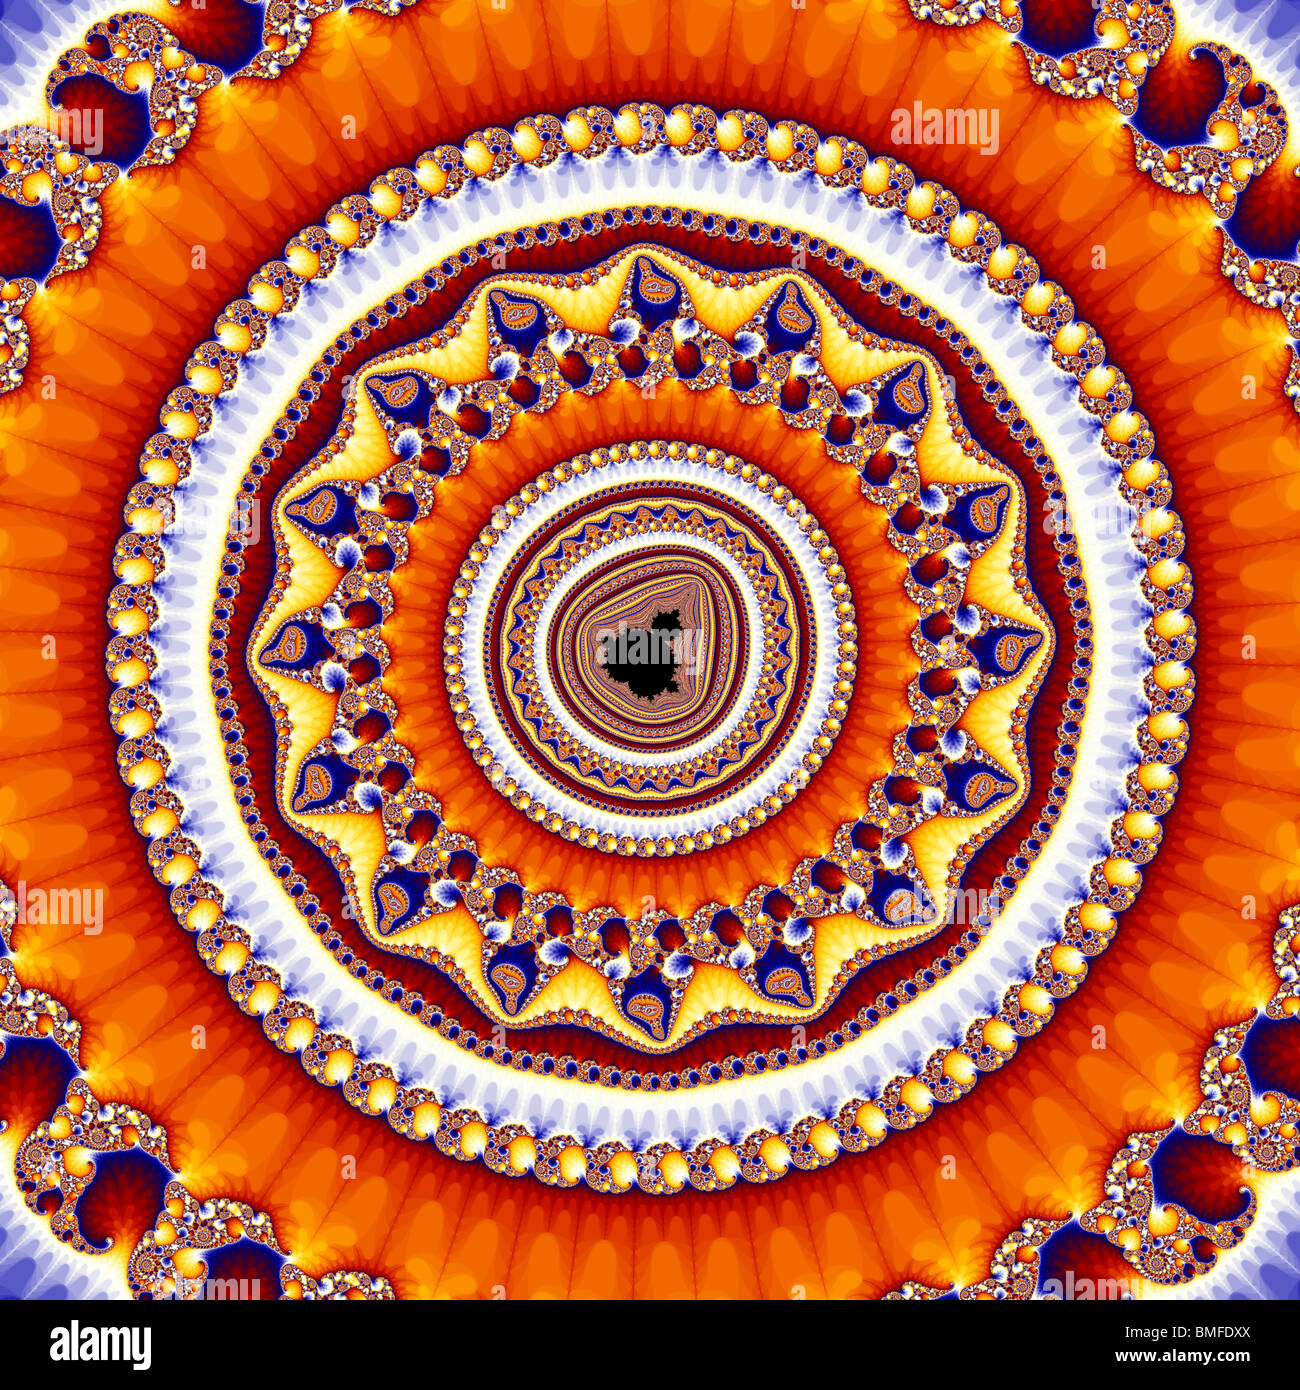 A very deep zoom into the Mandelbrot Set. The magnification is 3.5 with 97 zeros after it. - Stock Image